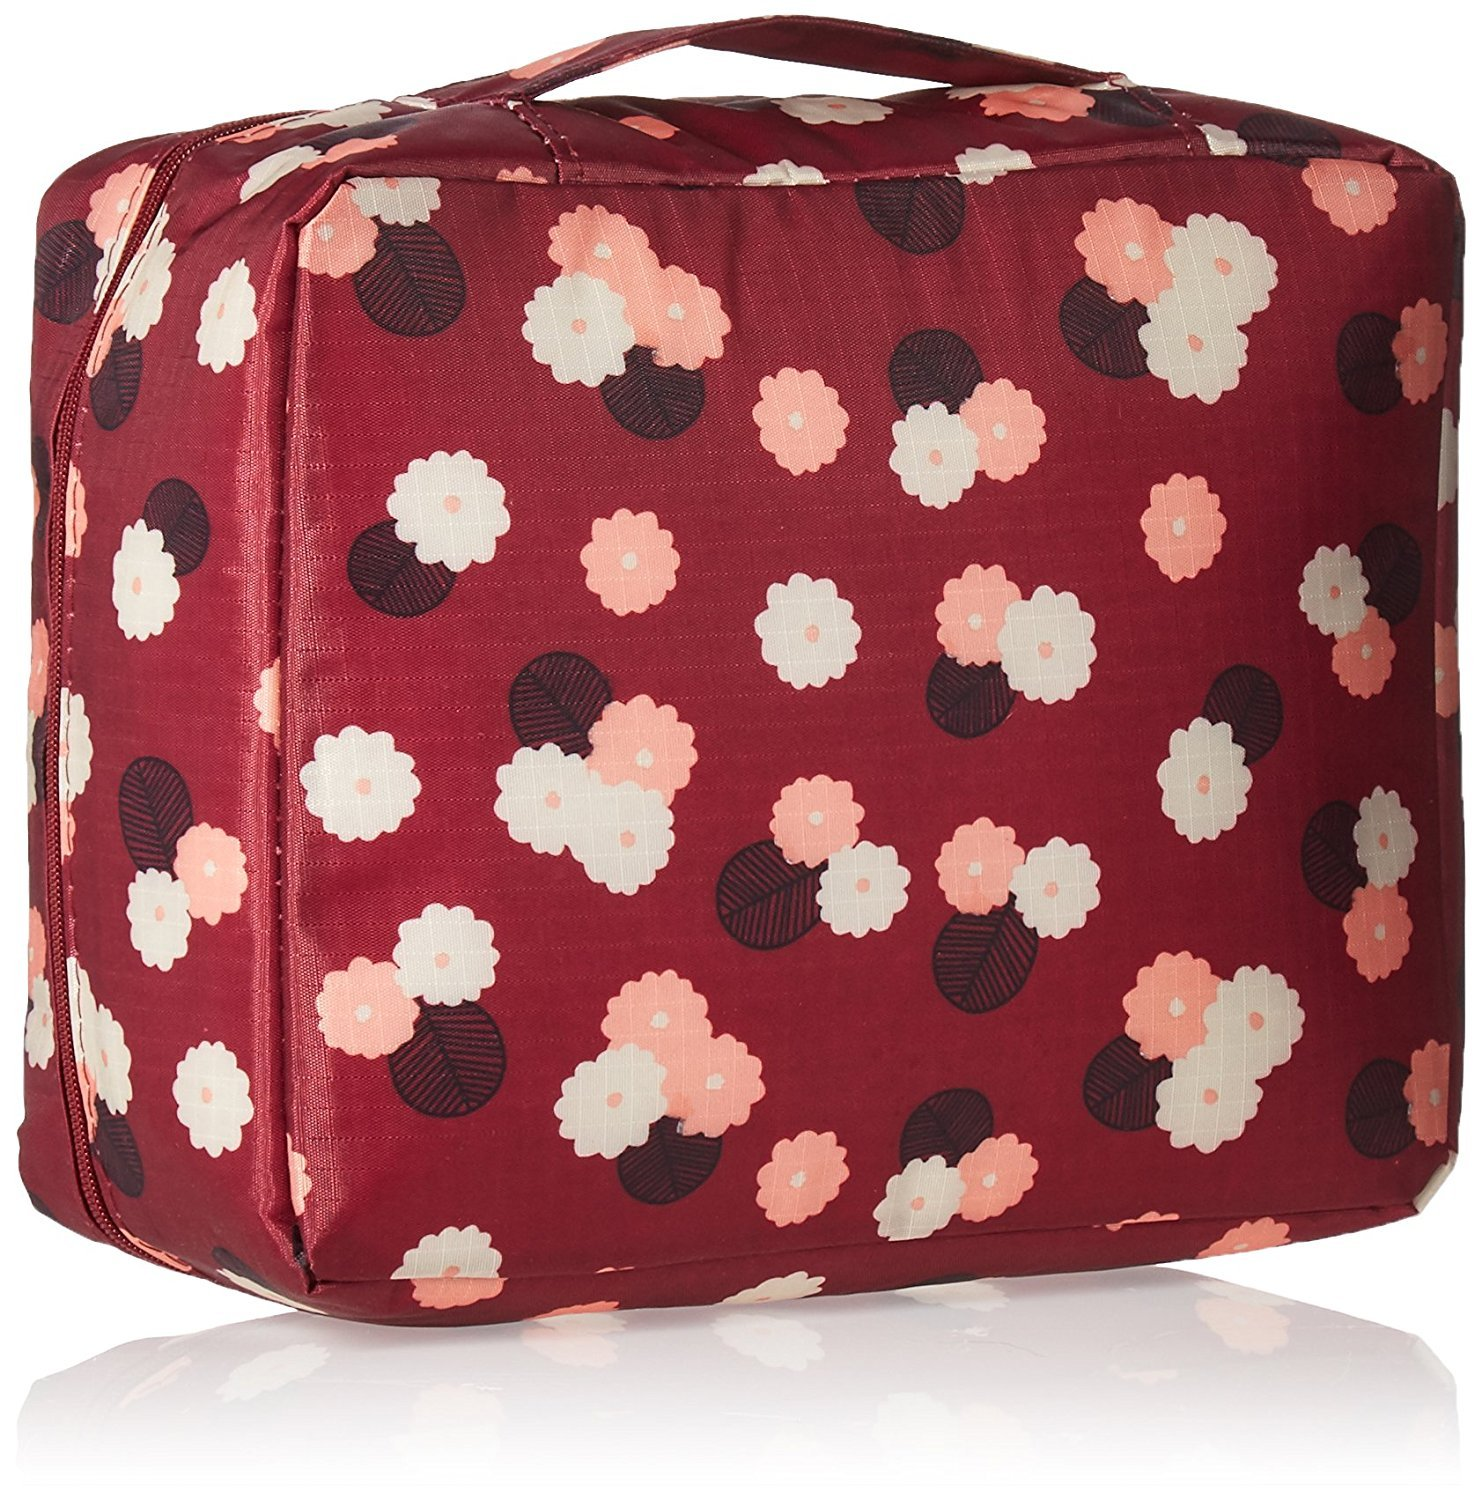 Toiletry Bag Cafurty Cosmetic Bag Travel Bag Makeup Carry Case Flowers in Wine Red